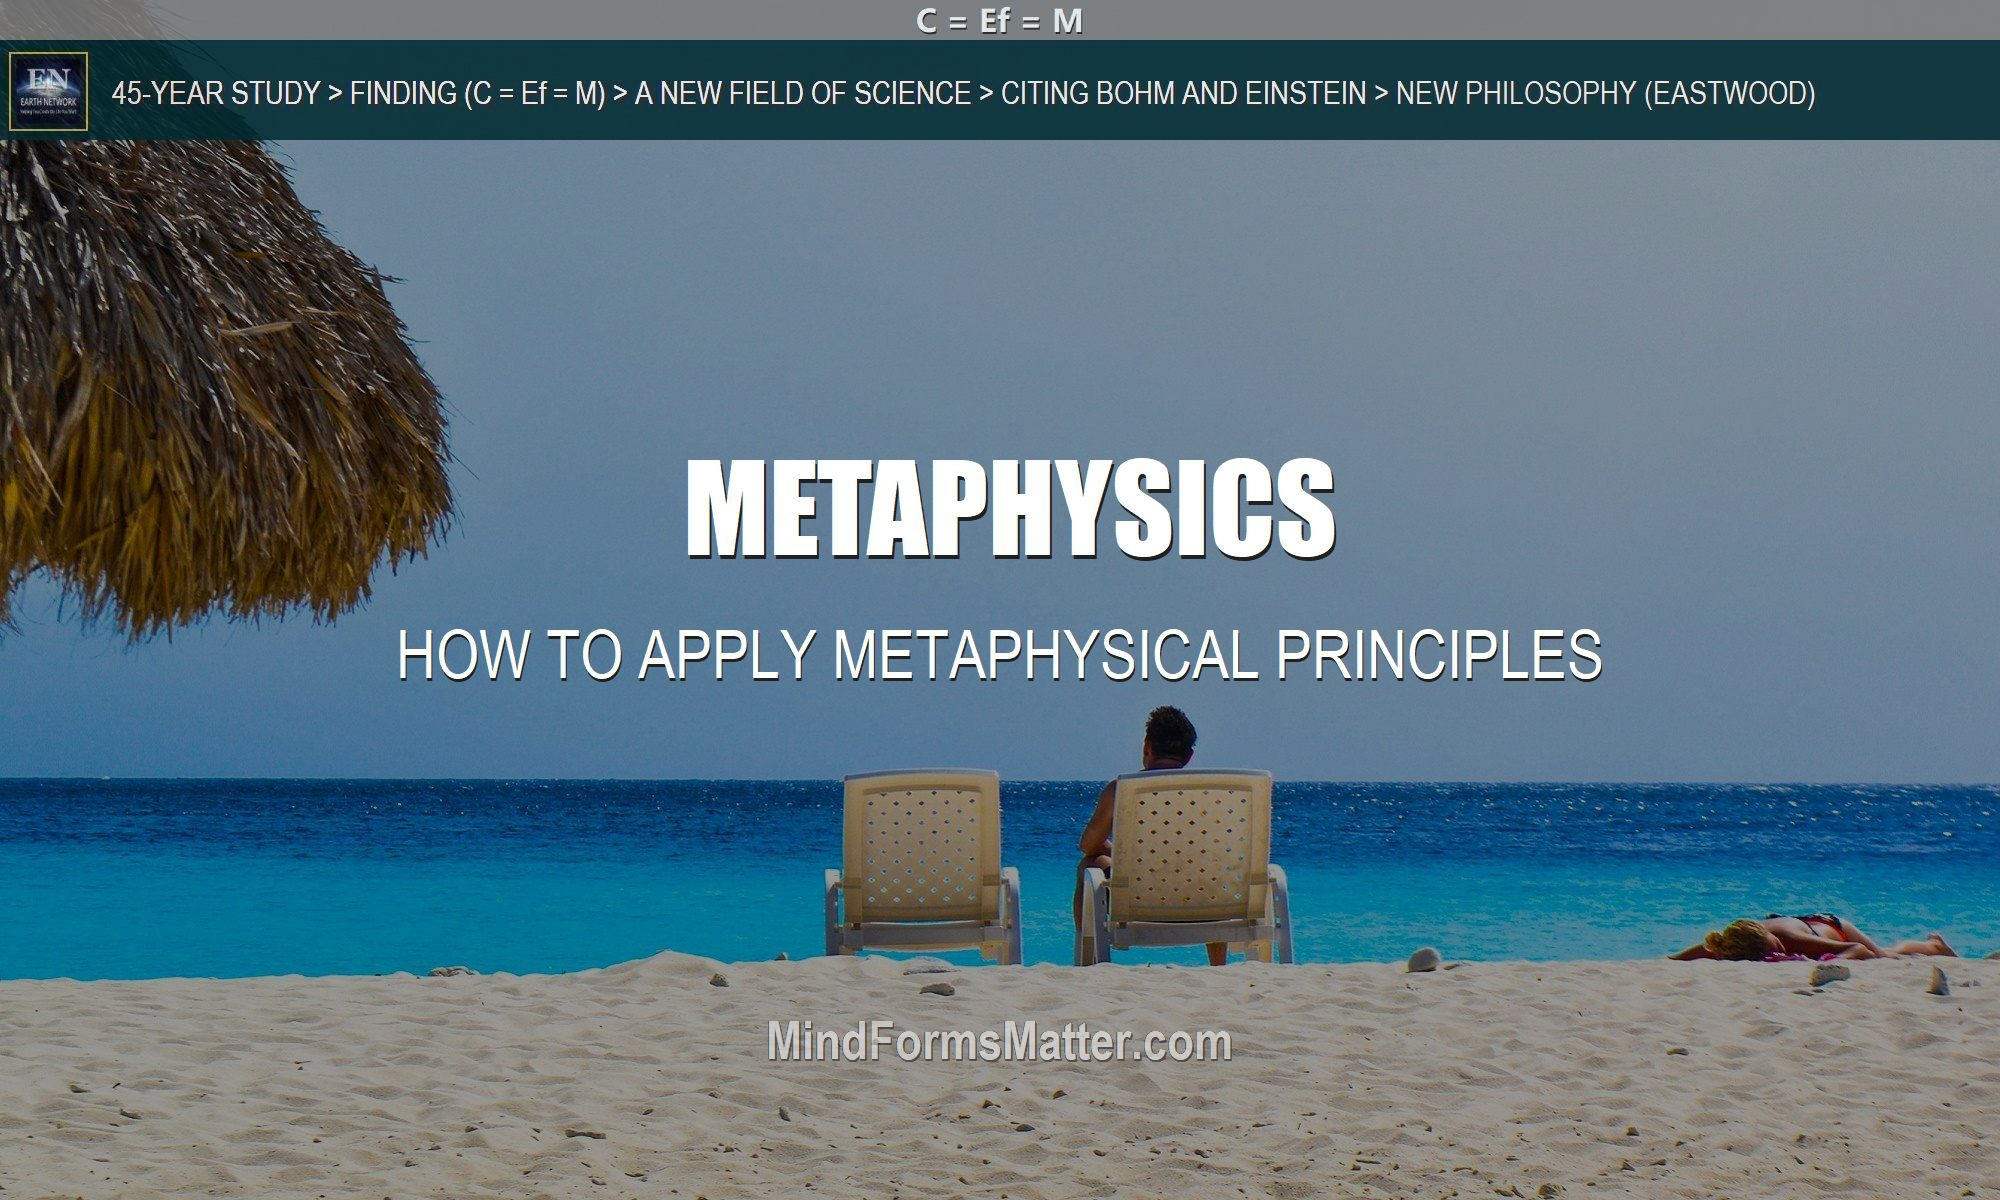 man sitting on beach applies metaphysics successfully Metaphysical principles work for him